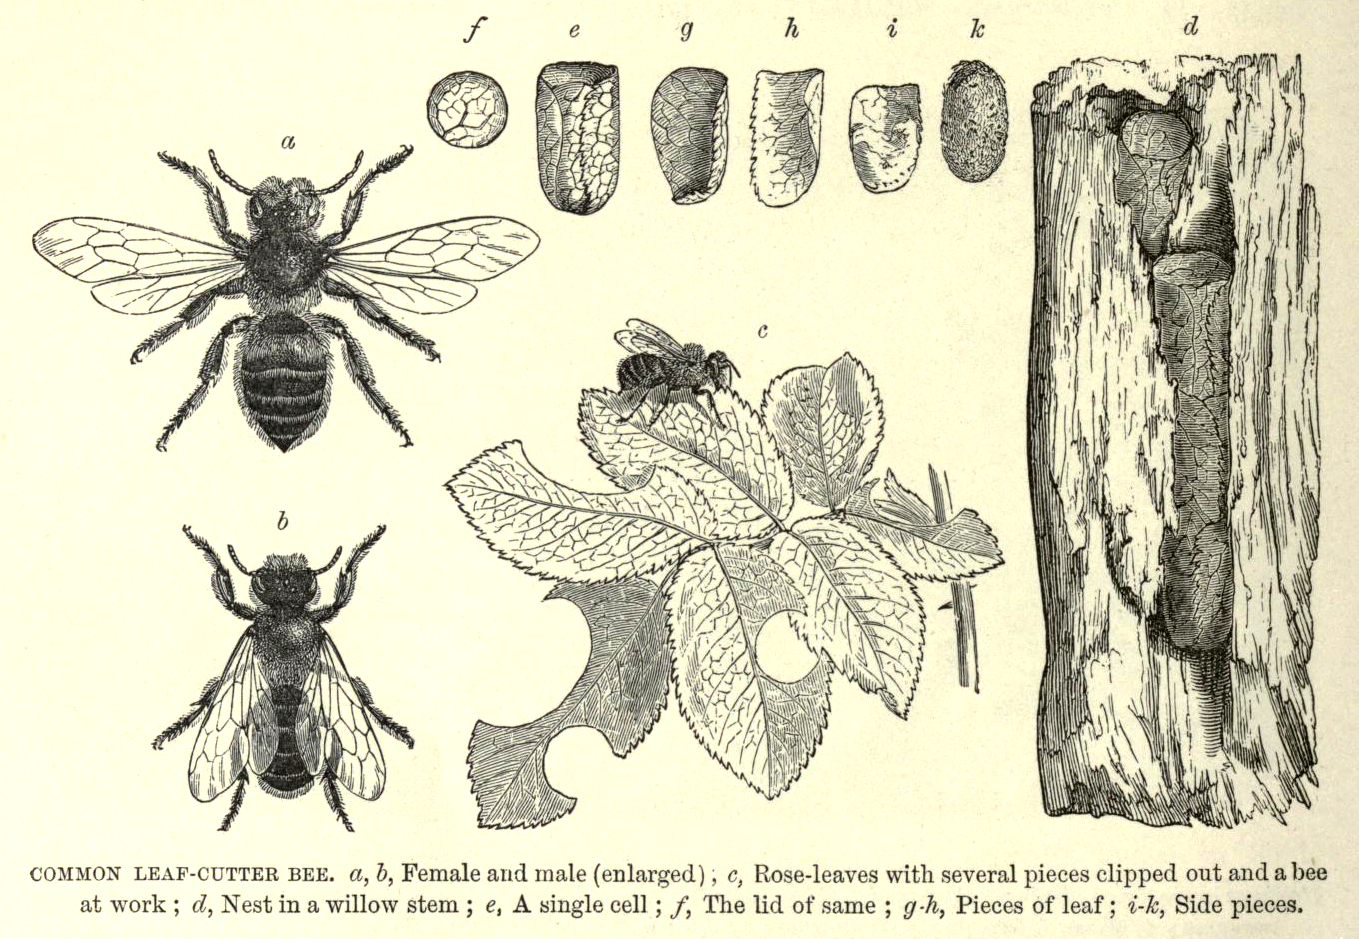 Leaf-cutter Bees and Nests